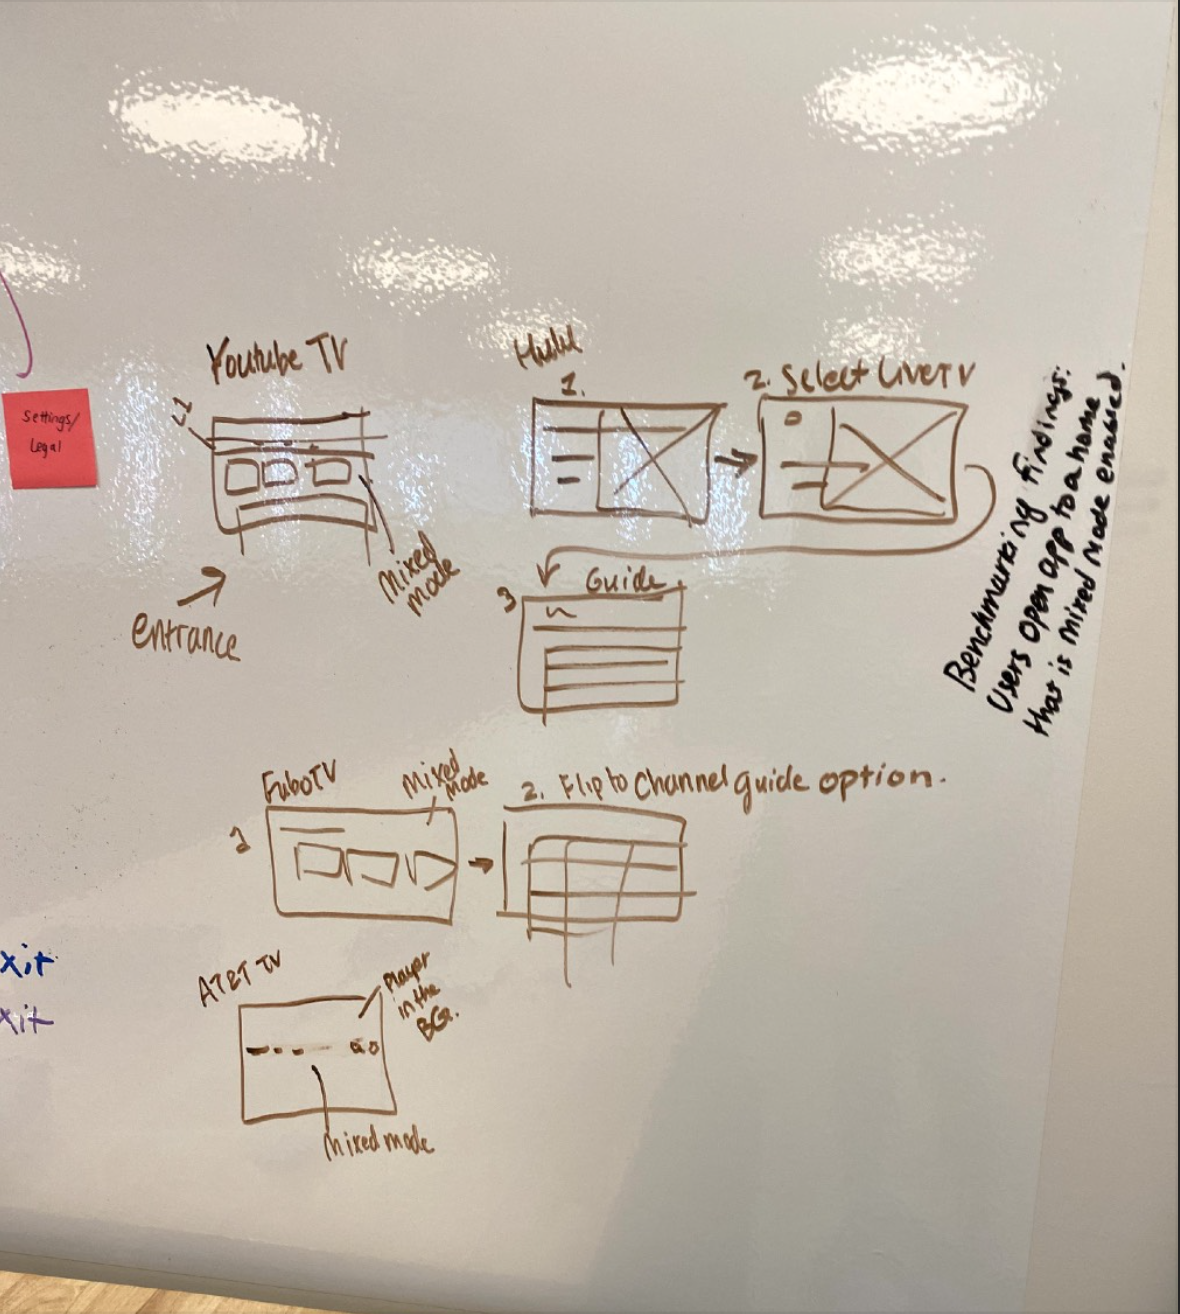 User flows mapped on the wonderful whiteboard wall.